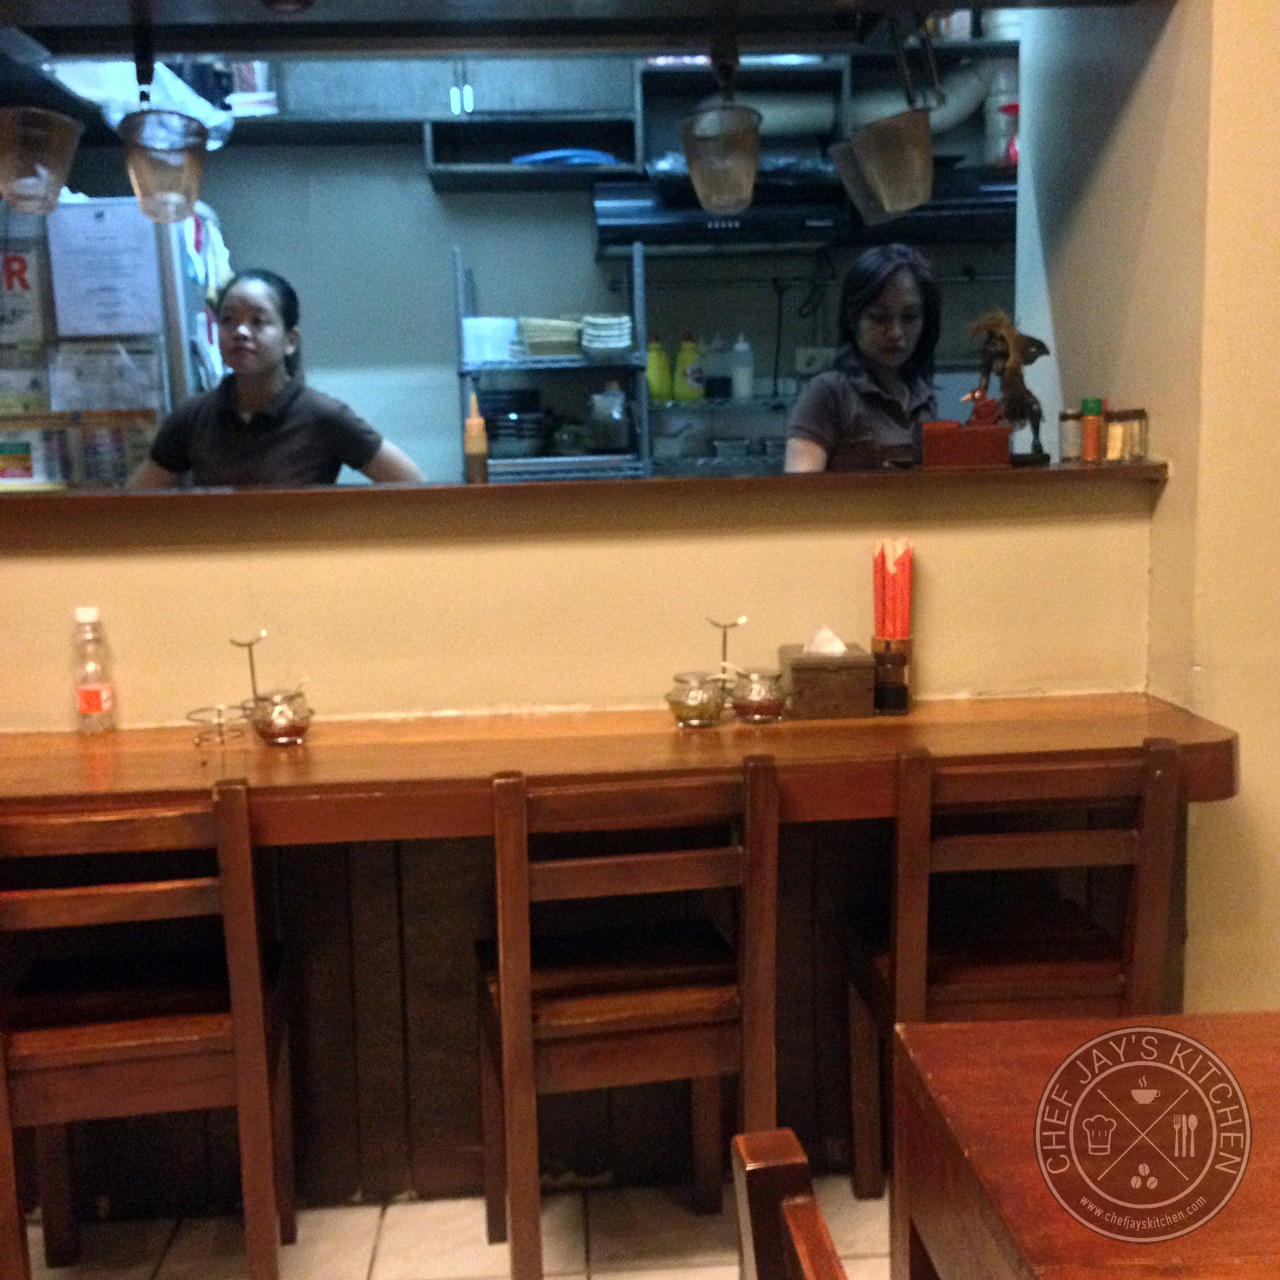 Wabi sabi noodle house affordable vegetarian dishes that for Cuisine wabi sabi